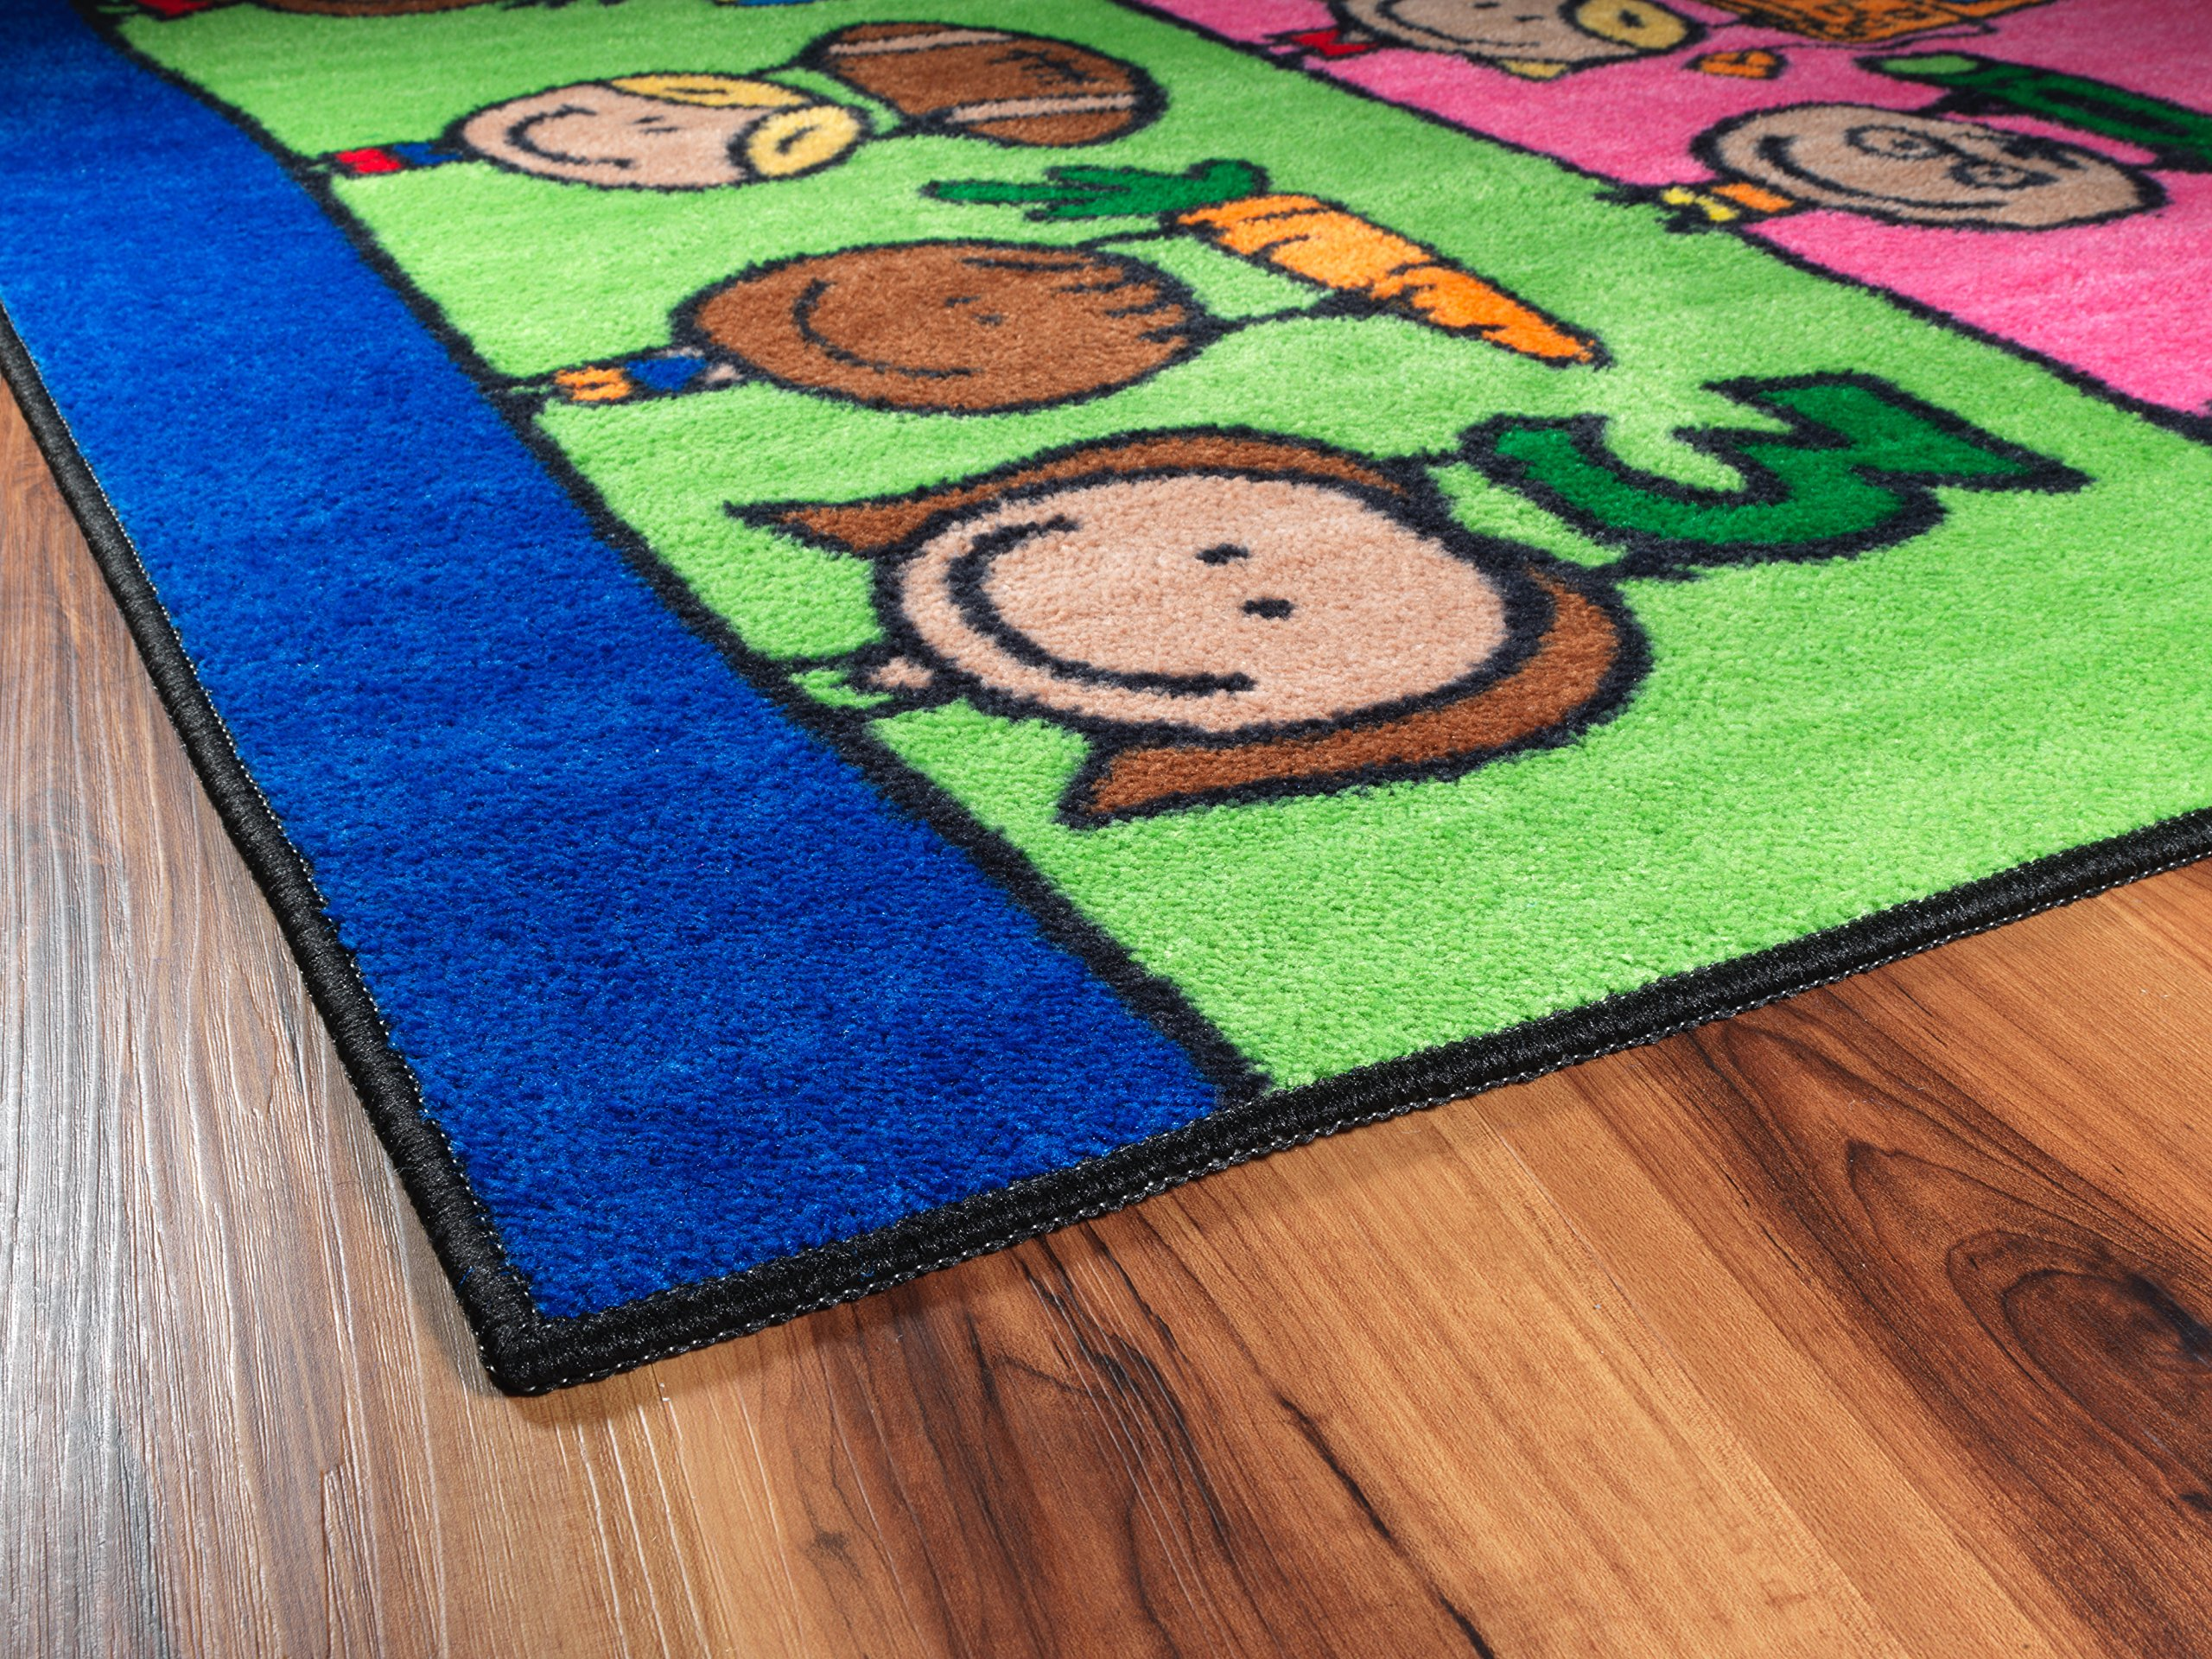 Flagship Carpets CE190-28W Fun at School Rug, Explore Health and Wellness As Well As STEAM Subjects, Children's Classroom Educational Carpet, 5' x 8', 60'' Length, 96'' Width, Multi-Color by Flagship Carpets (Image #14)